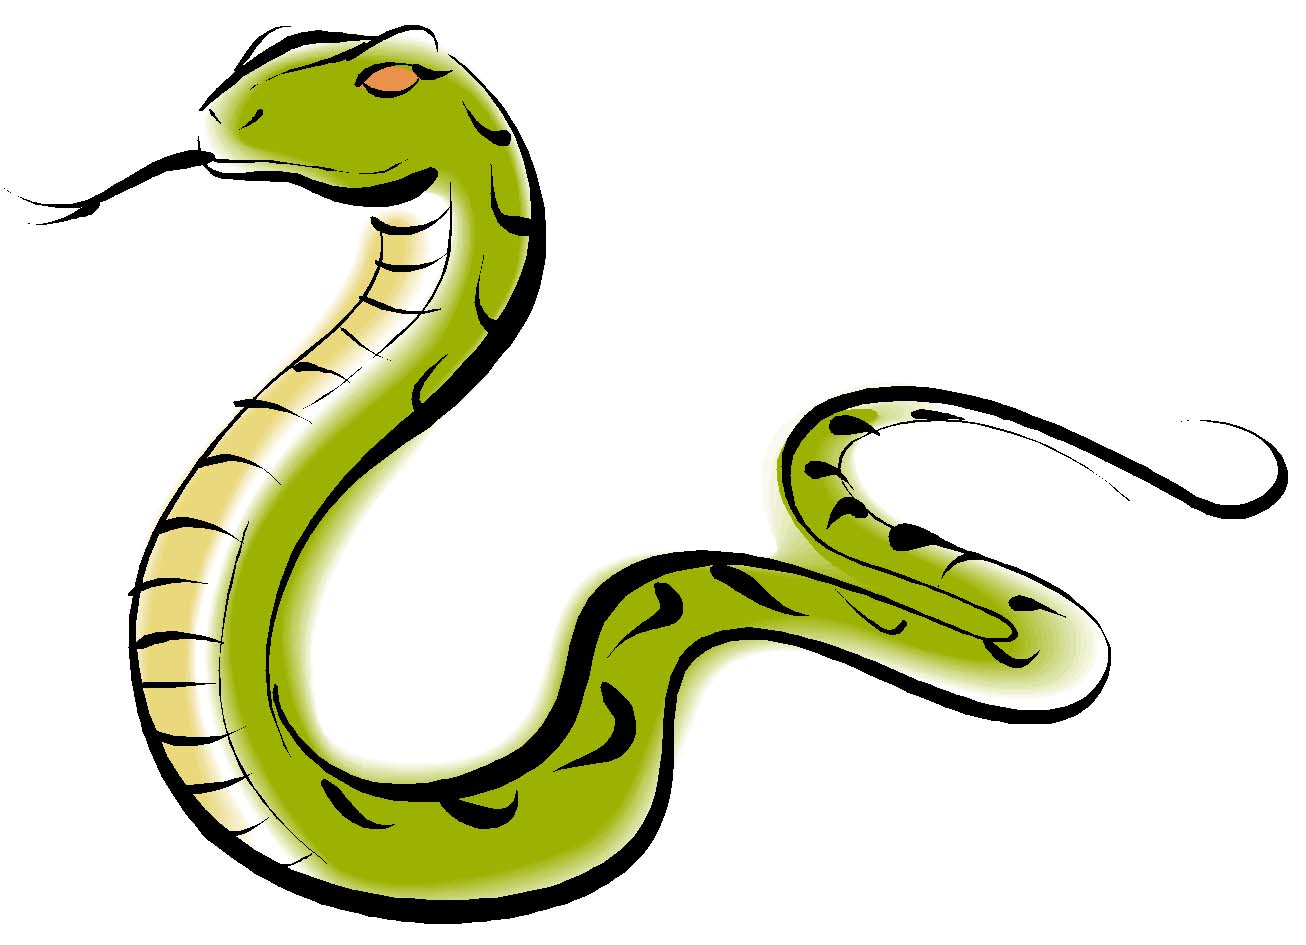 Rattle Snake Clip Art | Clipart library - Free Clipart Images